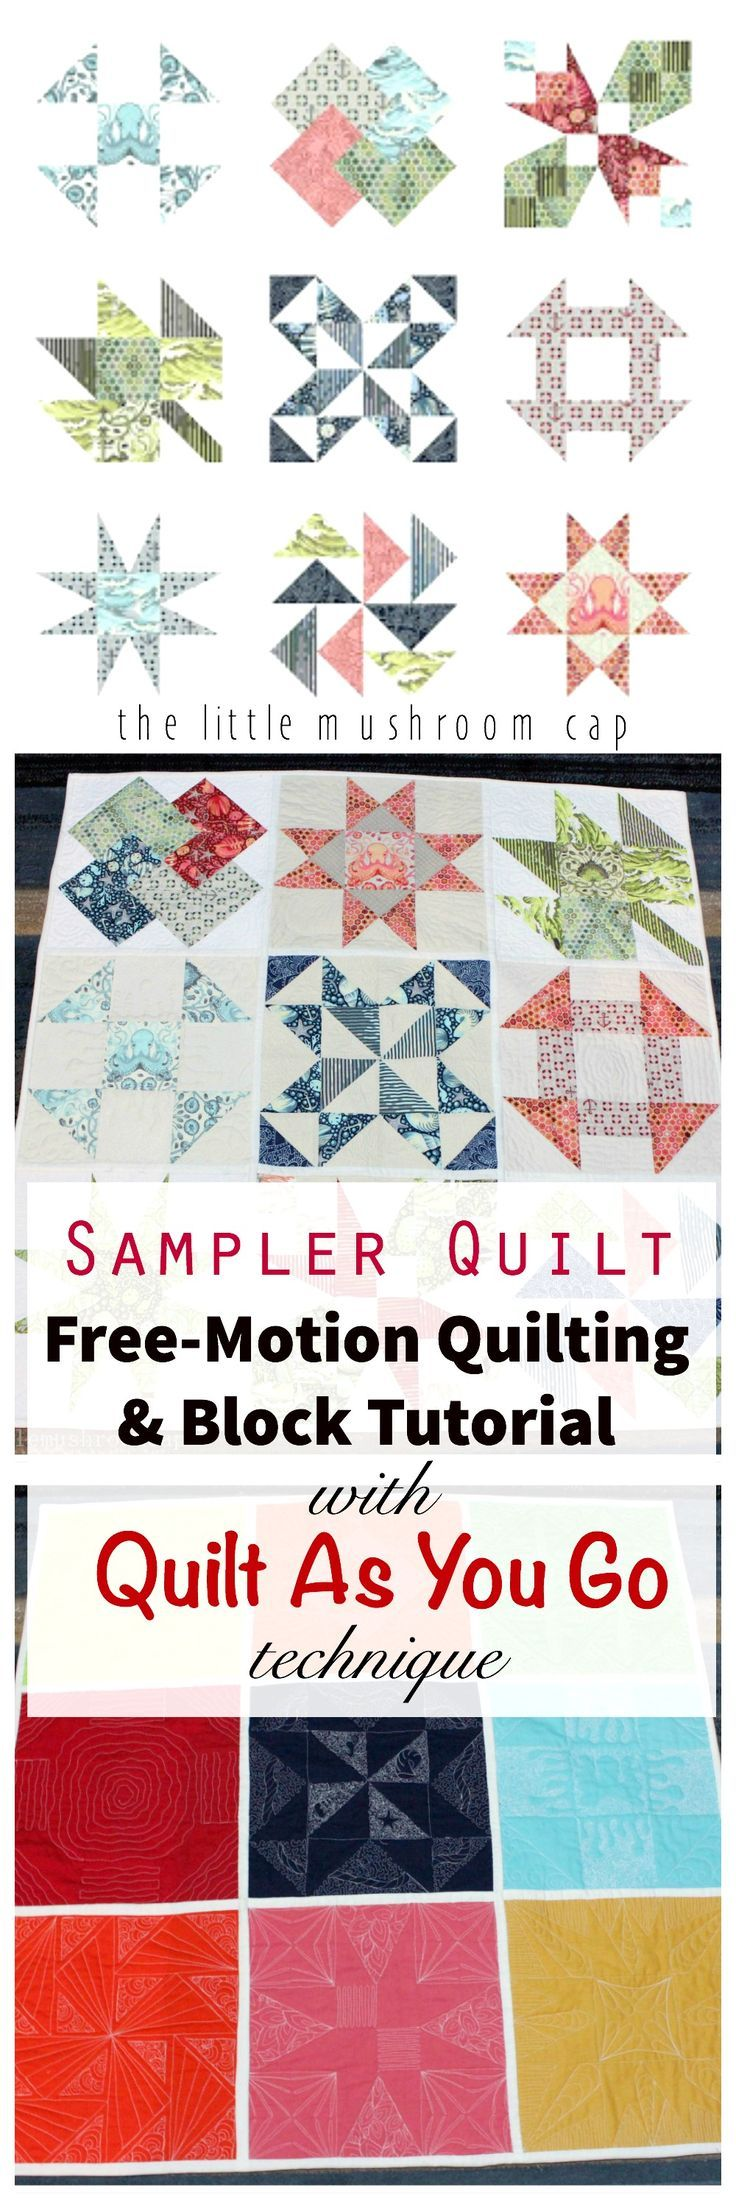 297501 best quilts quilts quilts images on pinterest quilt patterns quilting patterns and. Black Bedroom Furniture Sets. Home Design Ideas